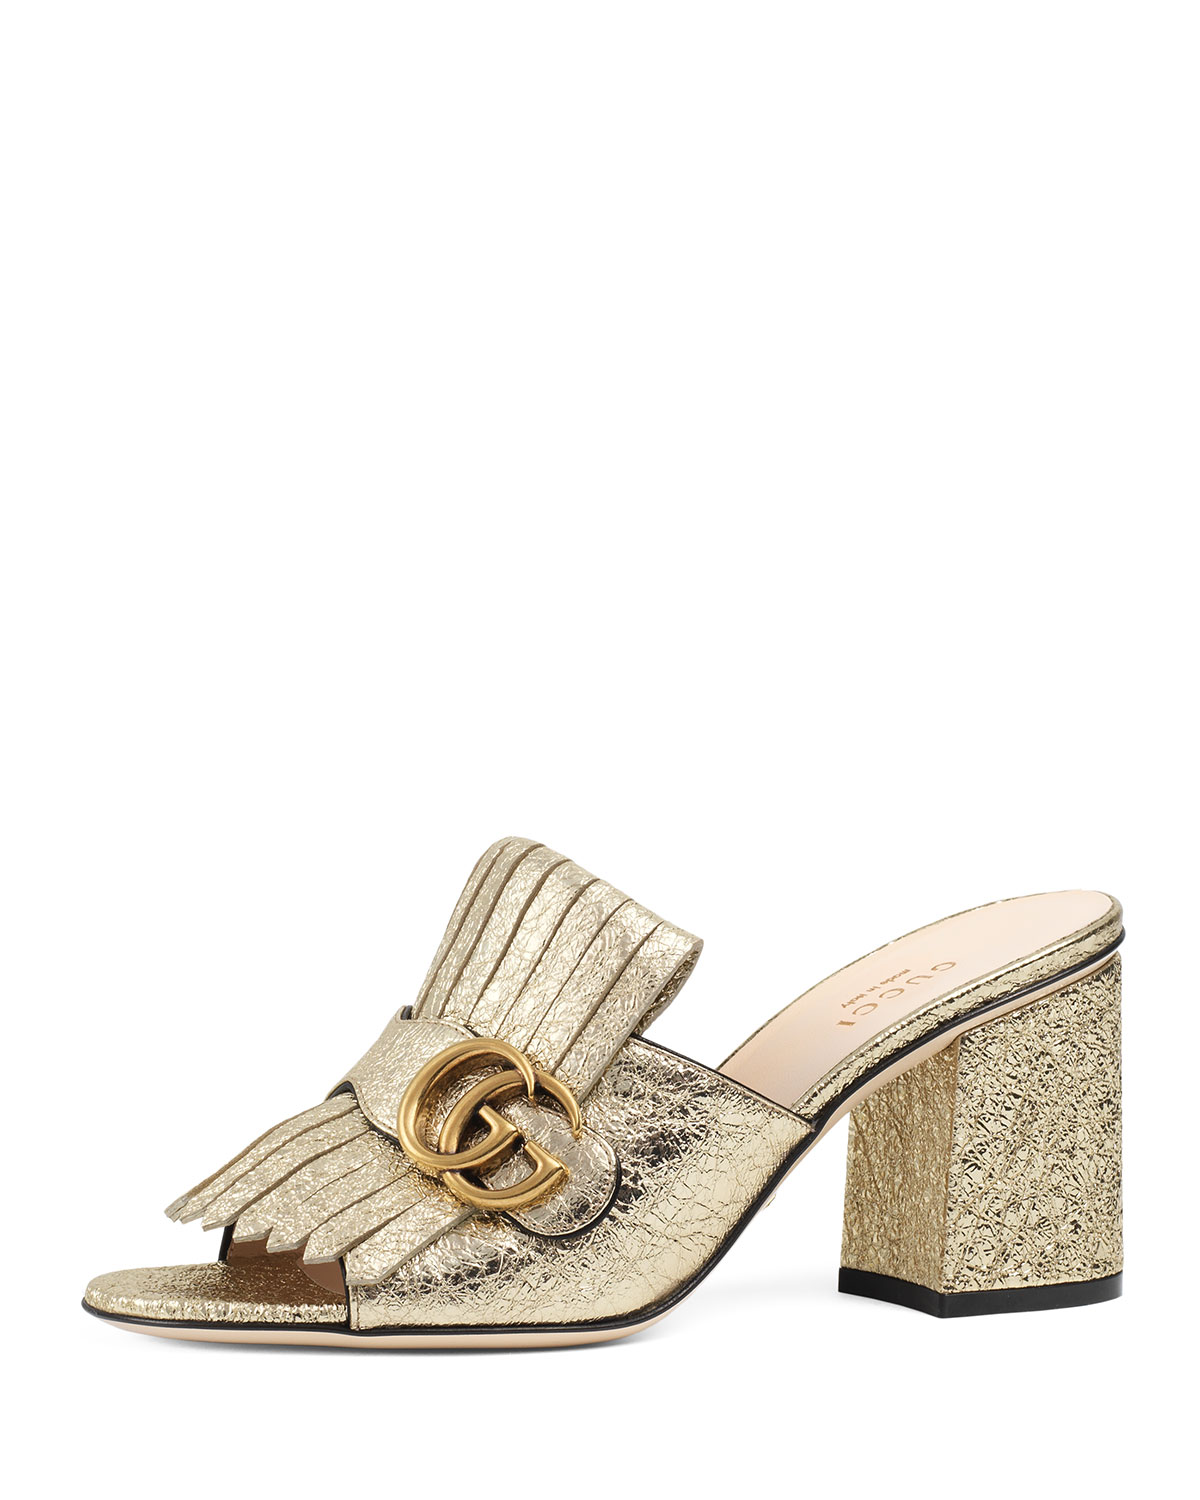 8b75590ee77 Gucci Marmont Metallic Leather 75mm Mule